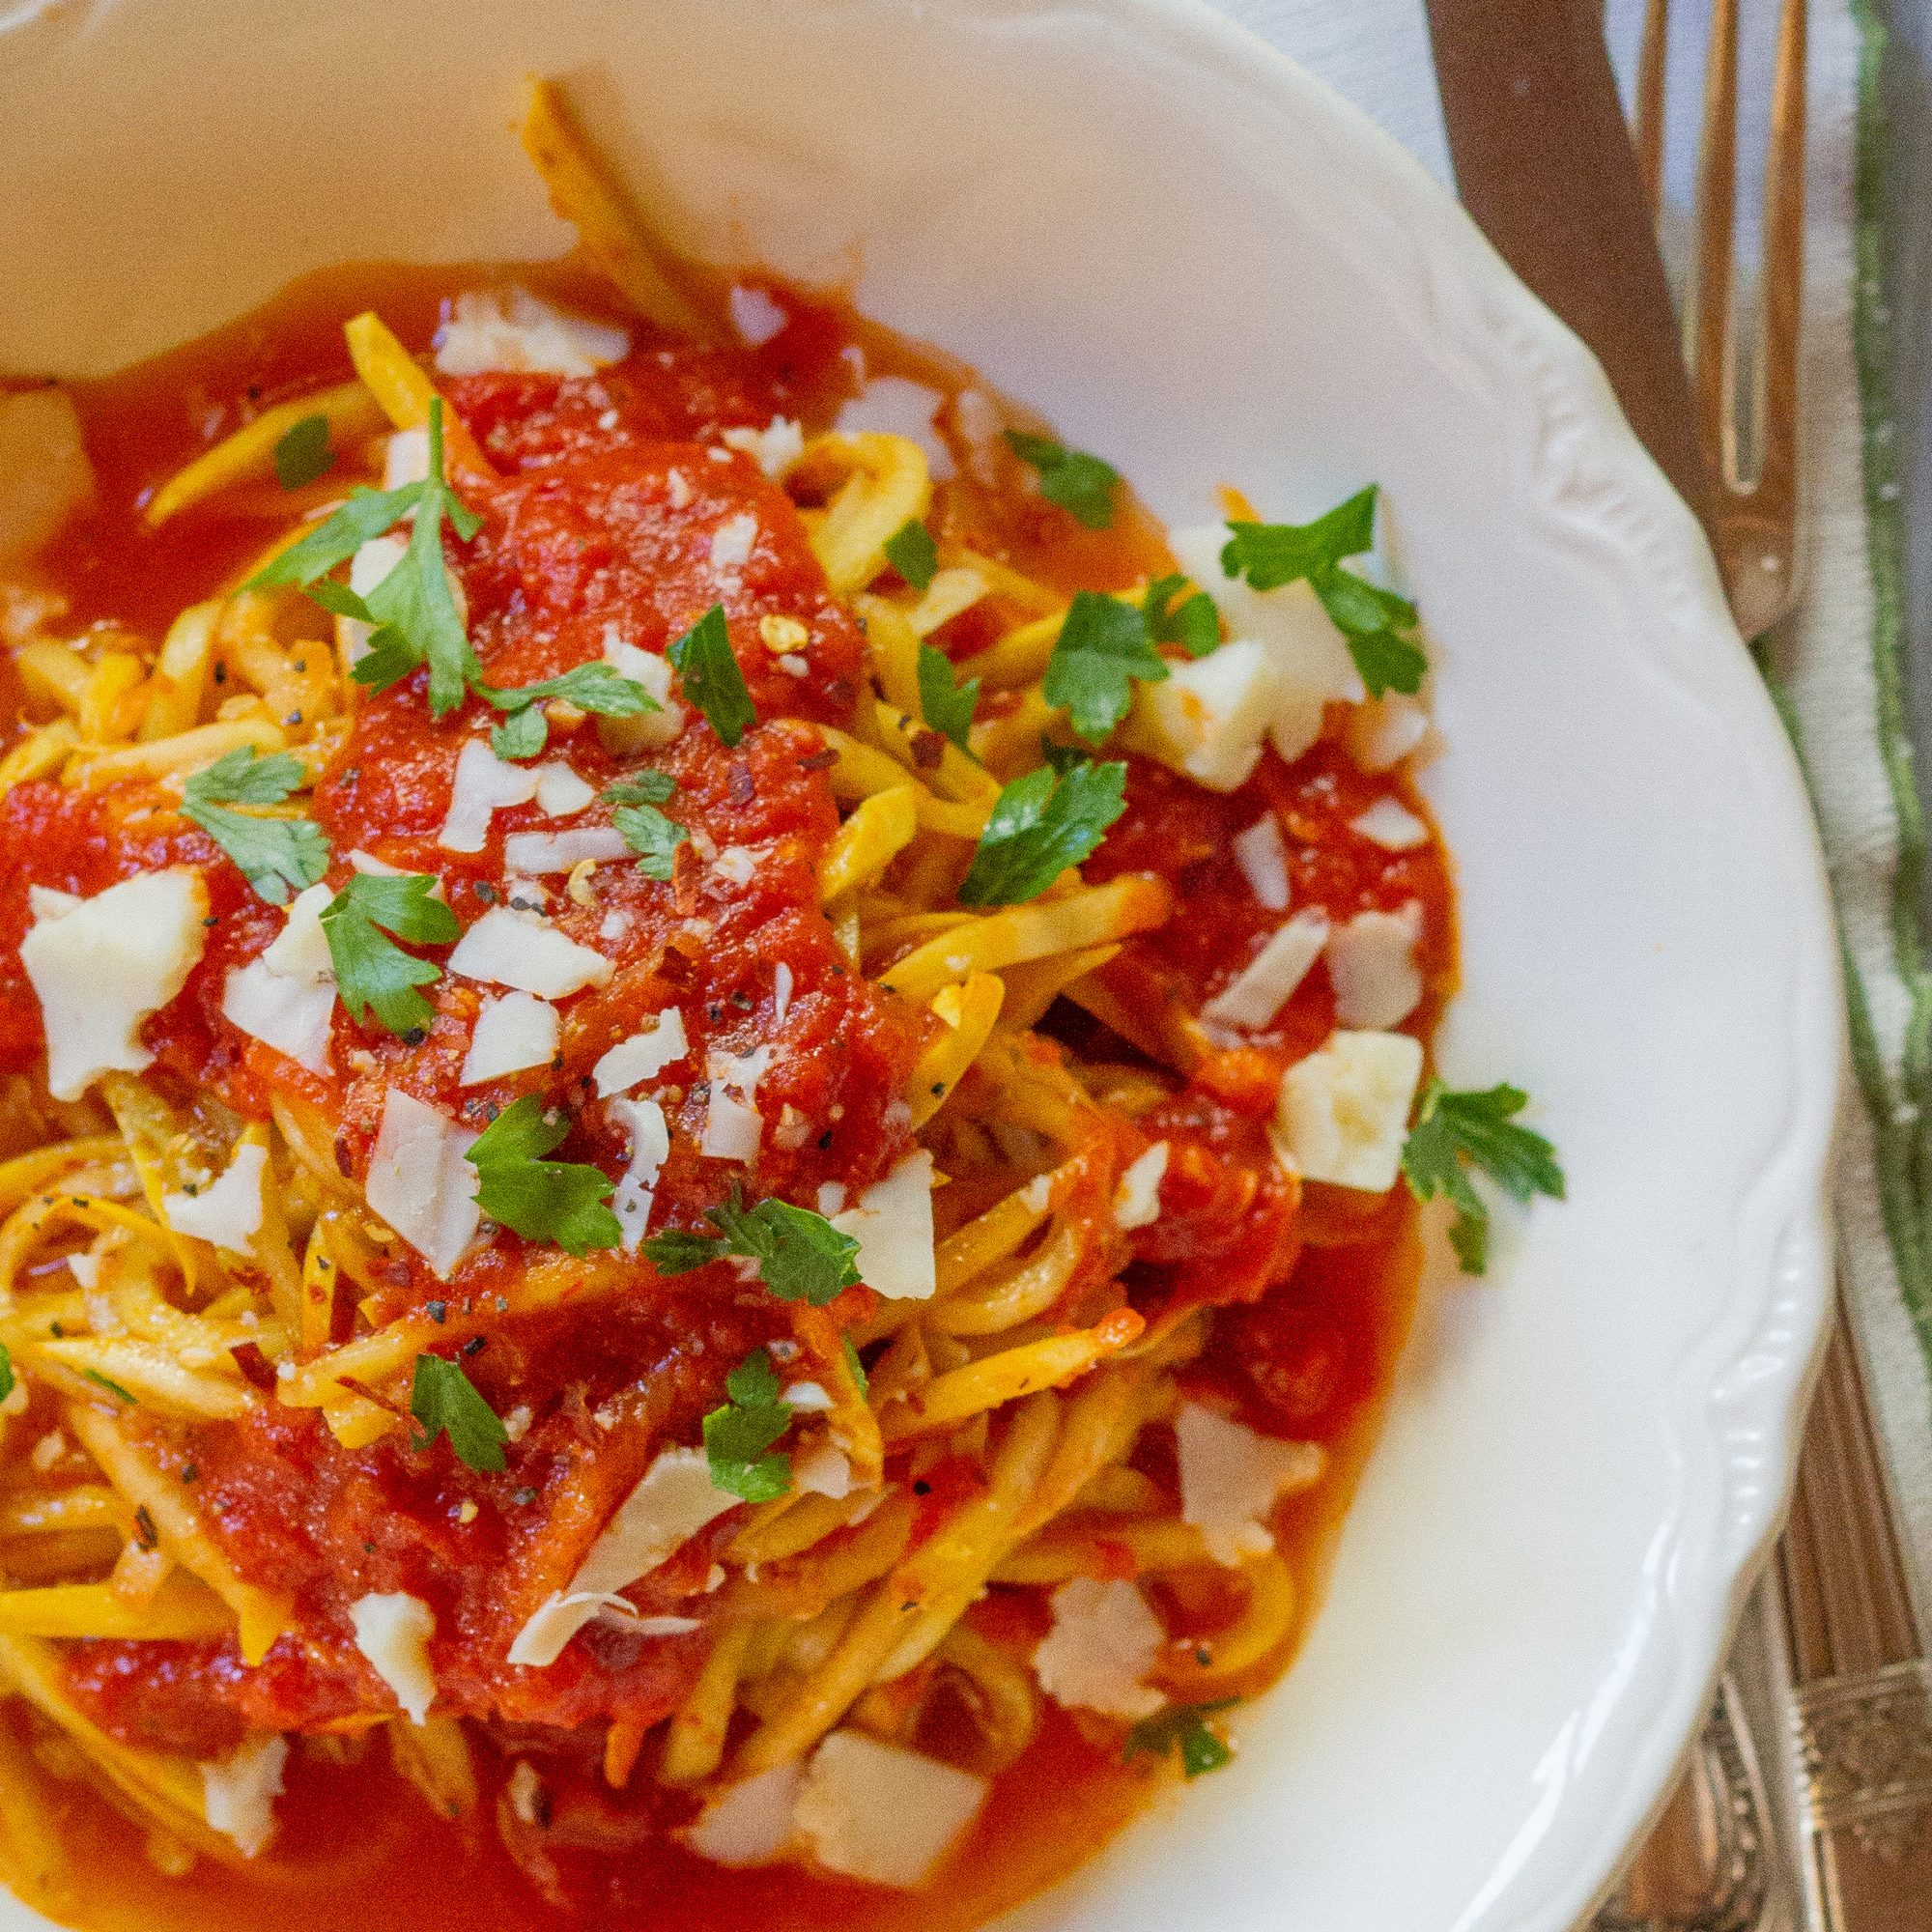 Yellow Squash all'Amatriciana with Pancetta and Spicy Tomato Sauce